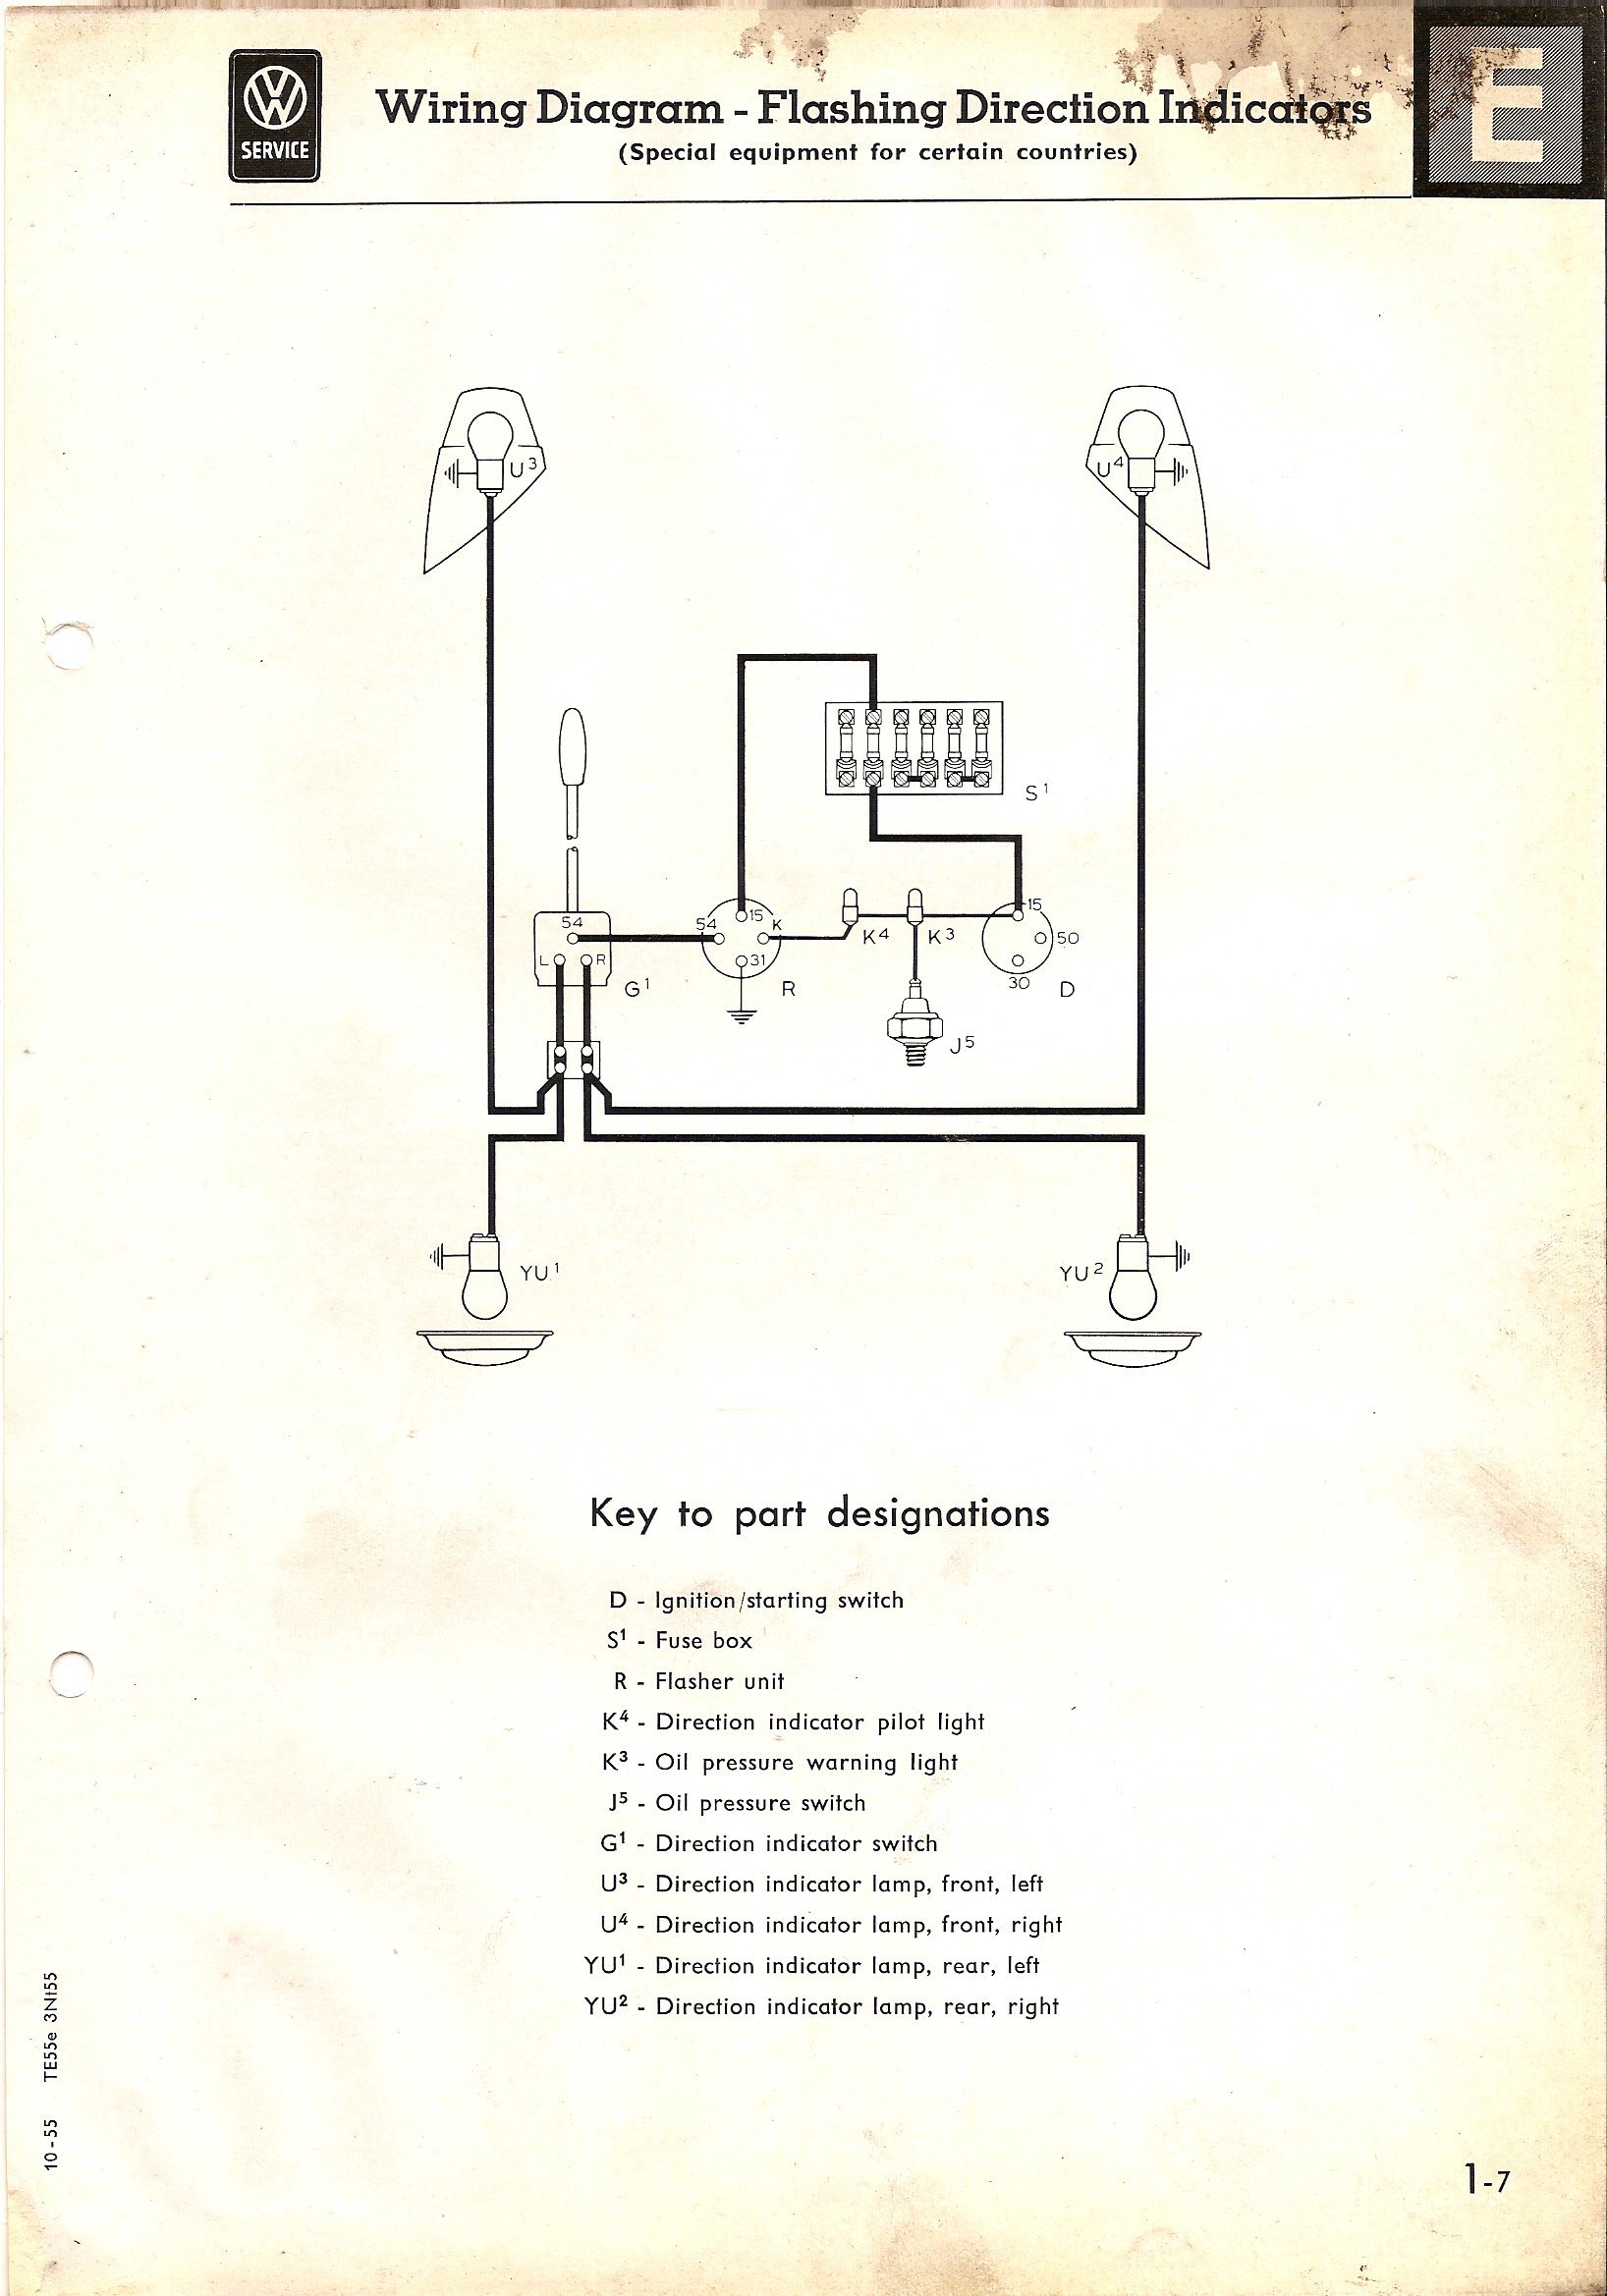 Type 2 Wiring Diagrams 1988 Chevy Truck Fuse Box